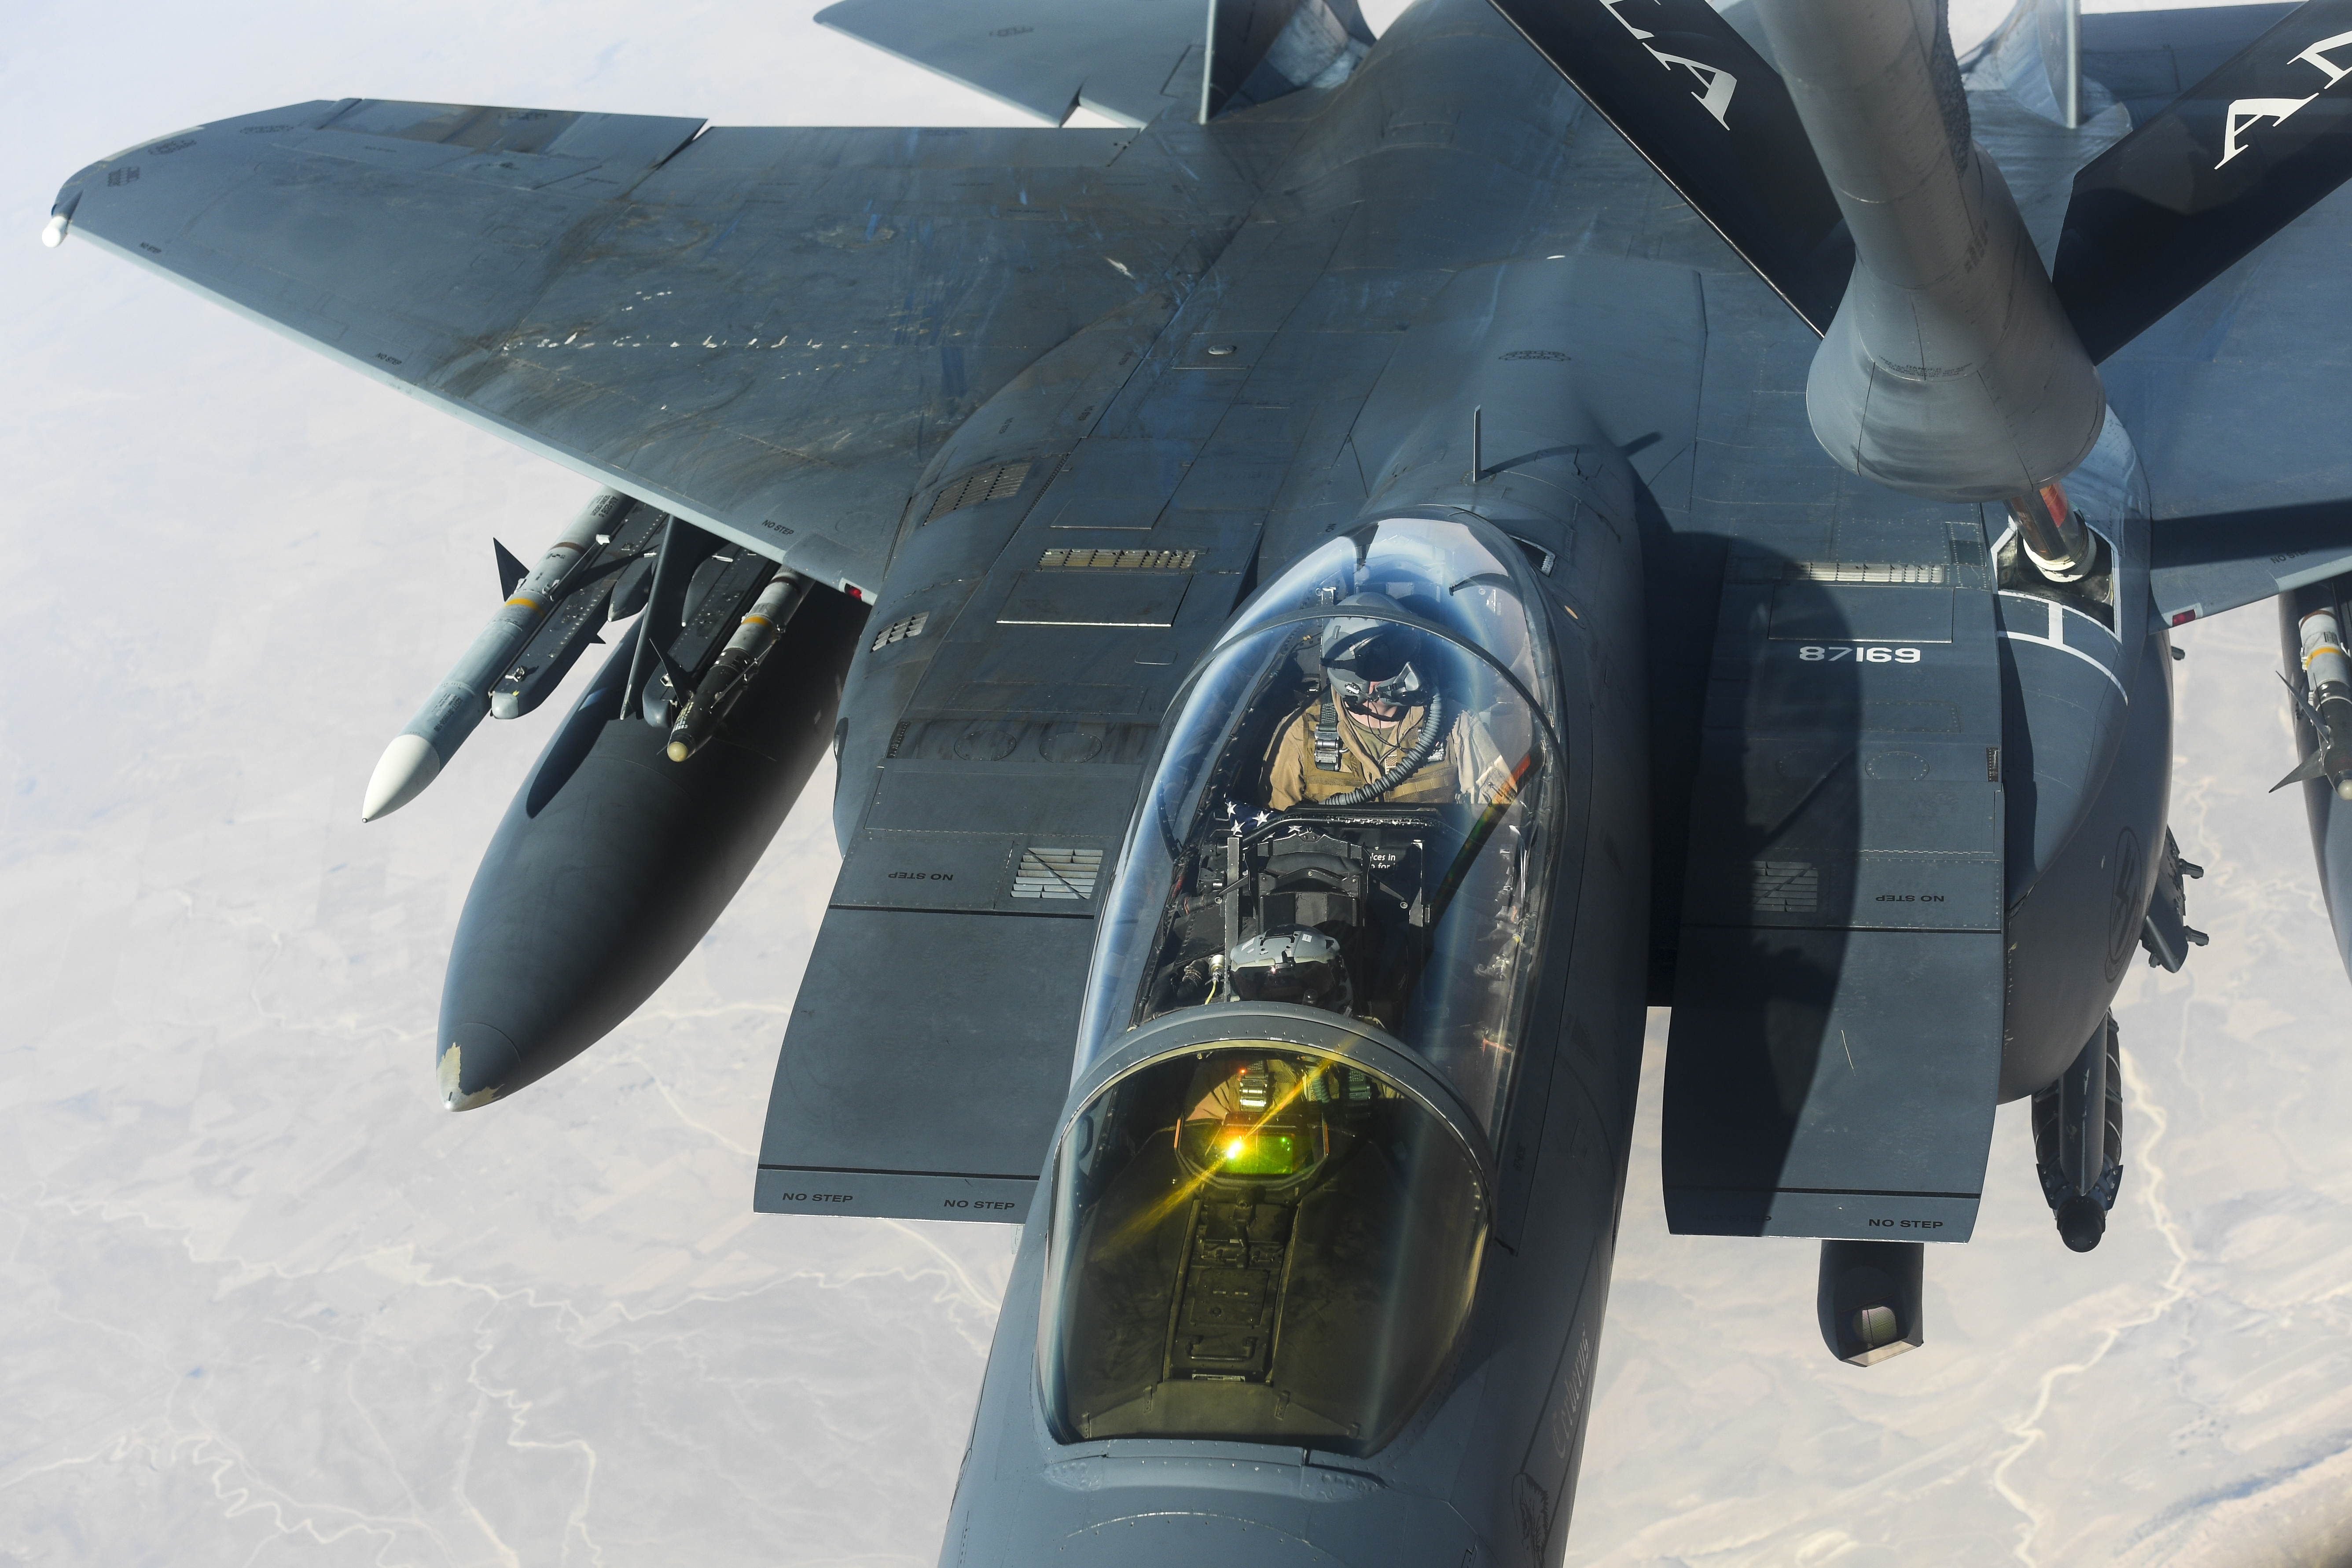 An F-15E Strike Eagle receives fuel from a KC-135 Stratotanker during a combat air patrol mission, Nov. 15, 2019. (Master Sgt. Joshua L. DeMotts/Air Force)